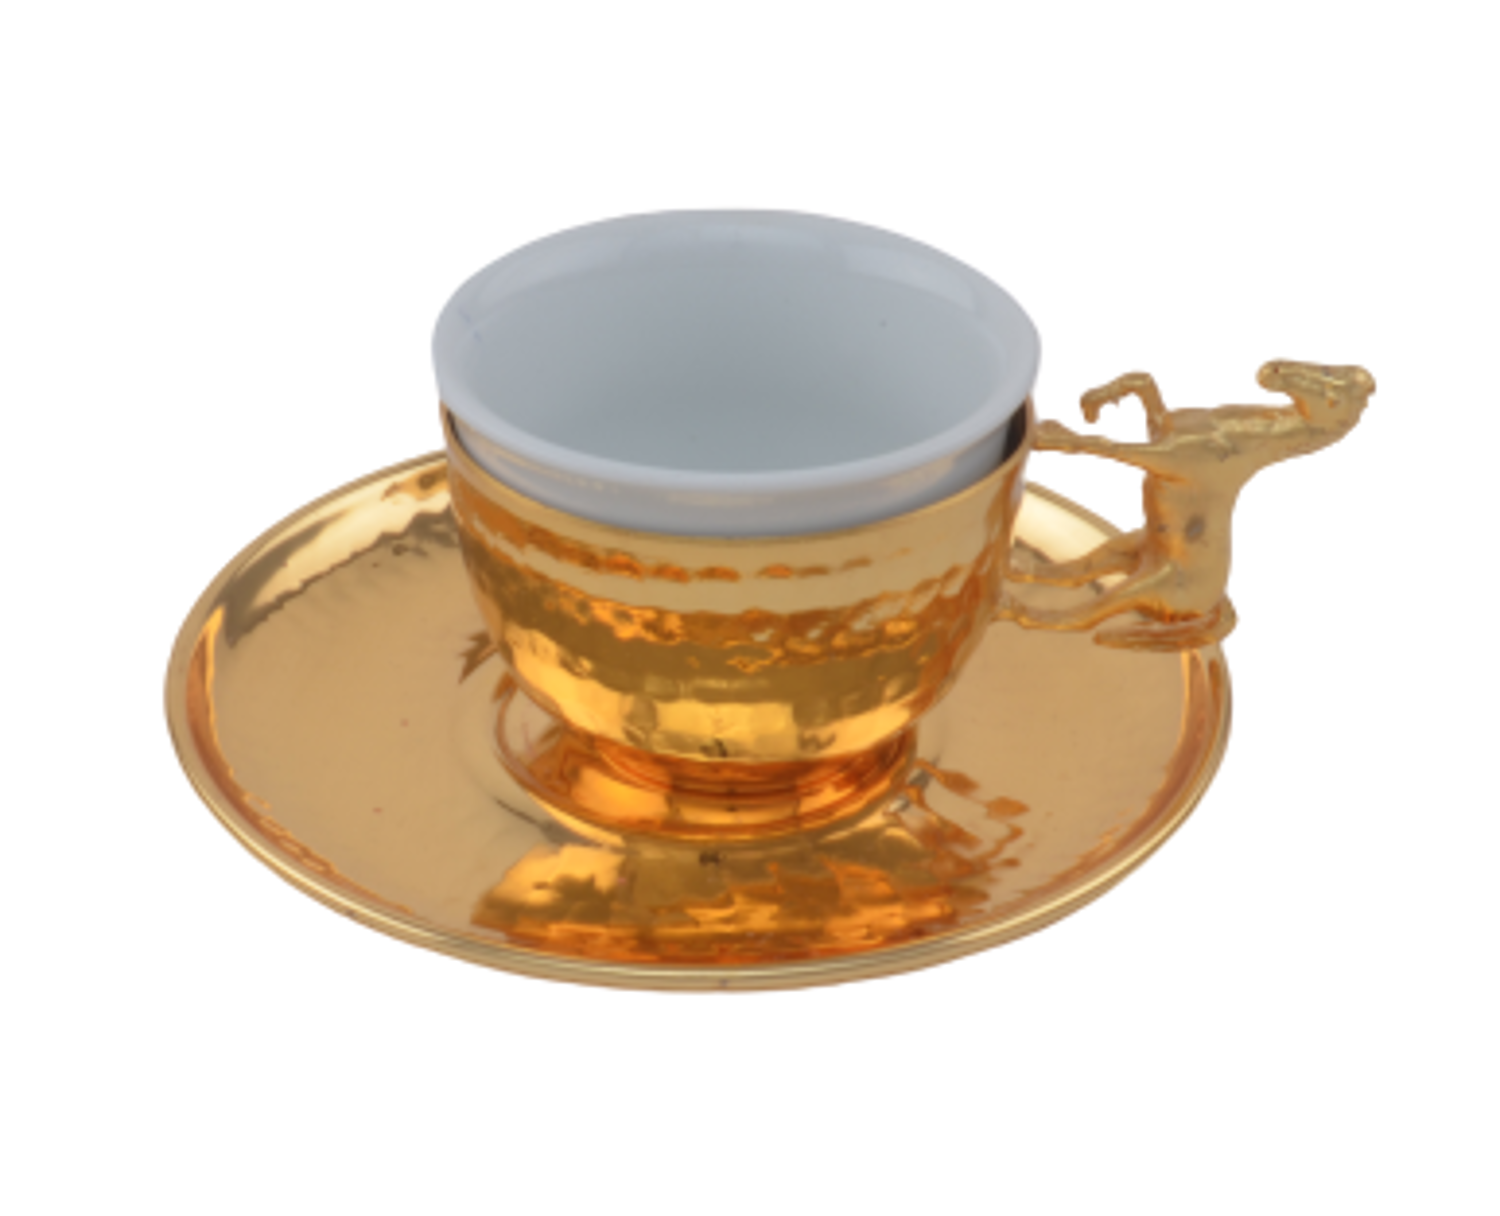 Picture of MEVLANA ARABIAN COFFEE CUP GOLD HORSE